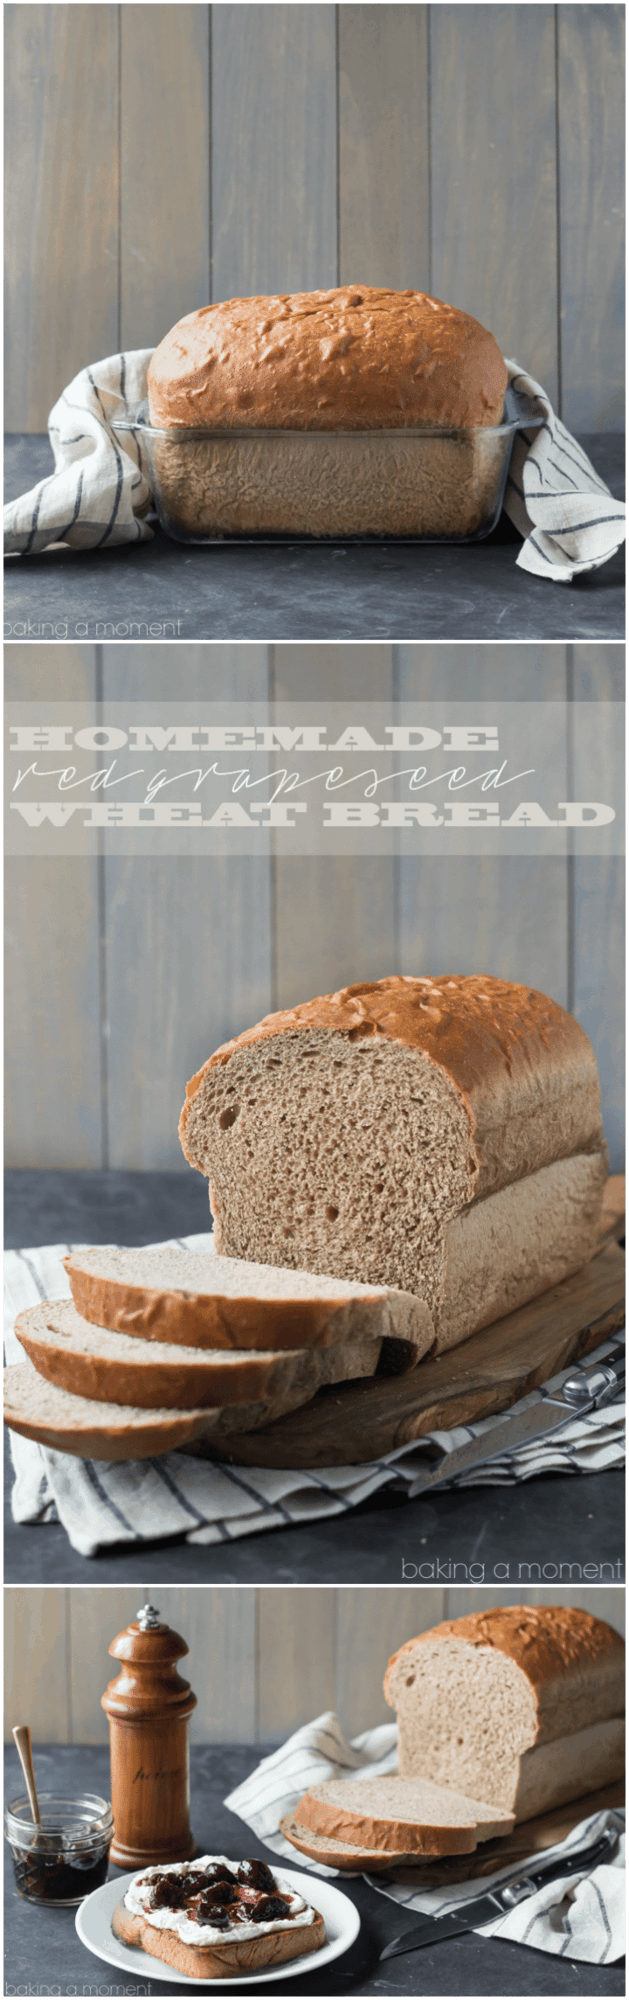 This is our go-to bread now: my whole family LOVES this Red Grapeseed Wheat Bread recipe!